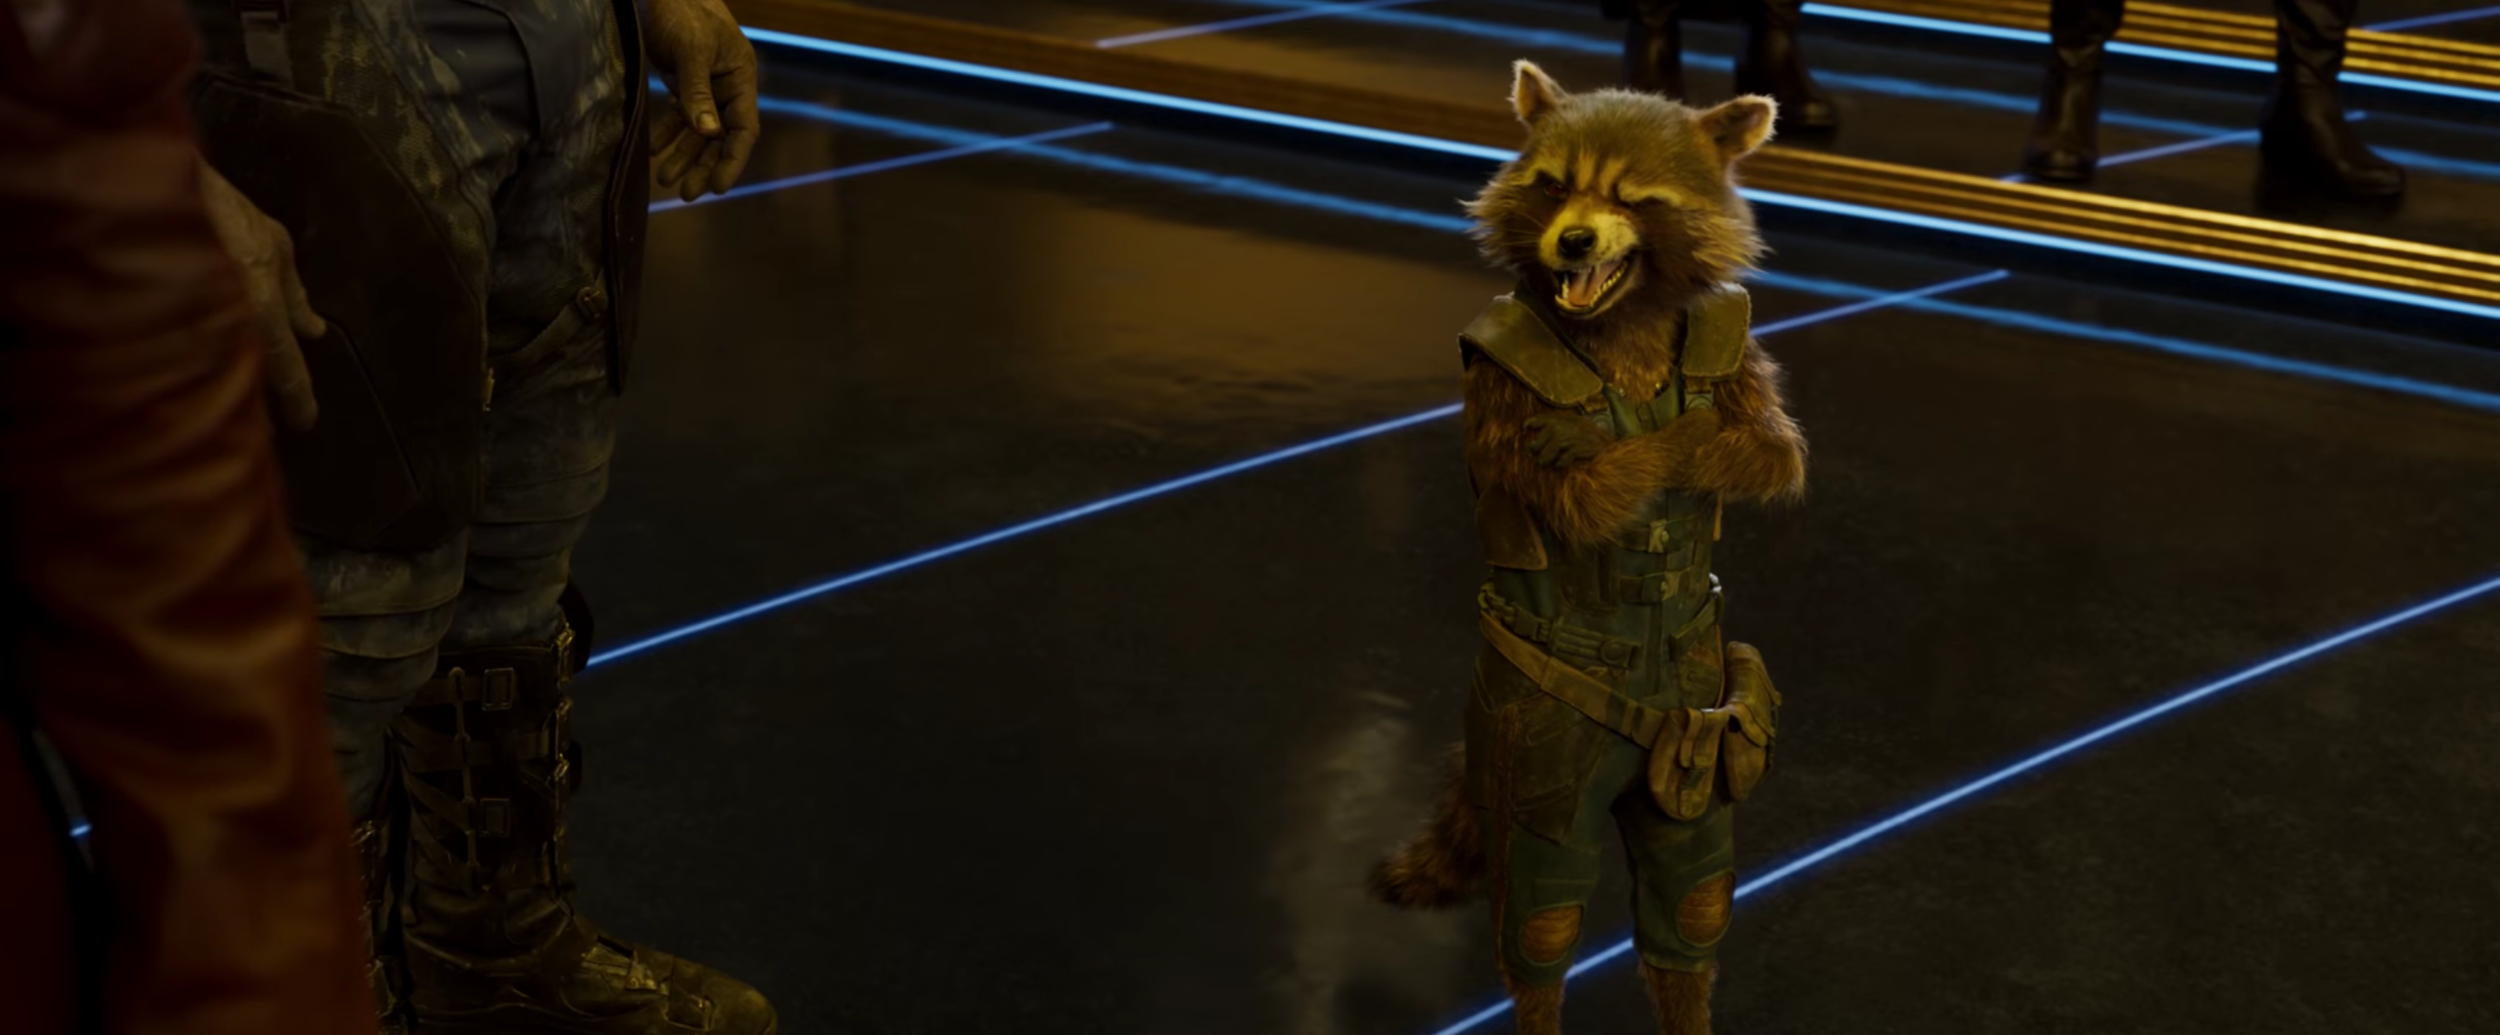 Screenshot from Guardians of the Galaxy Vol. 2 (2017) trailer